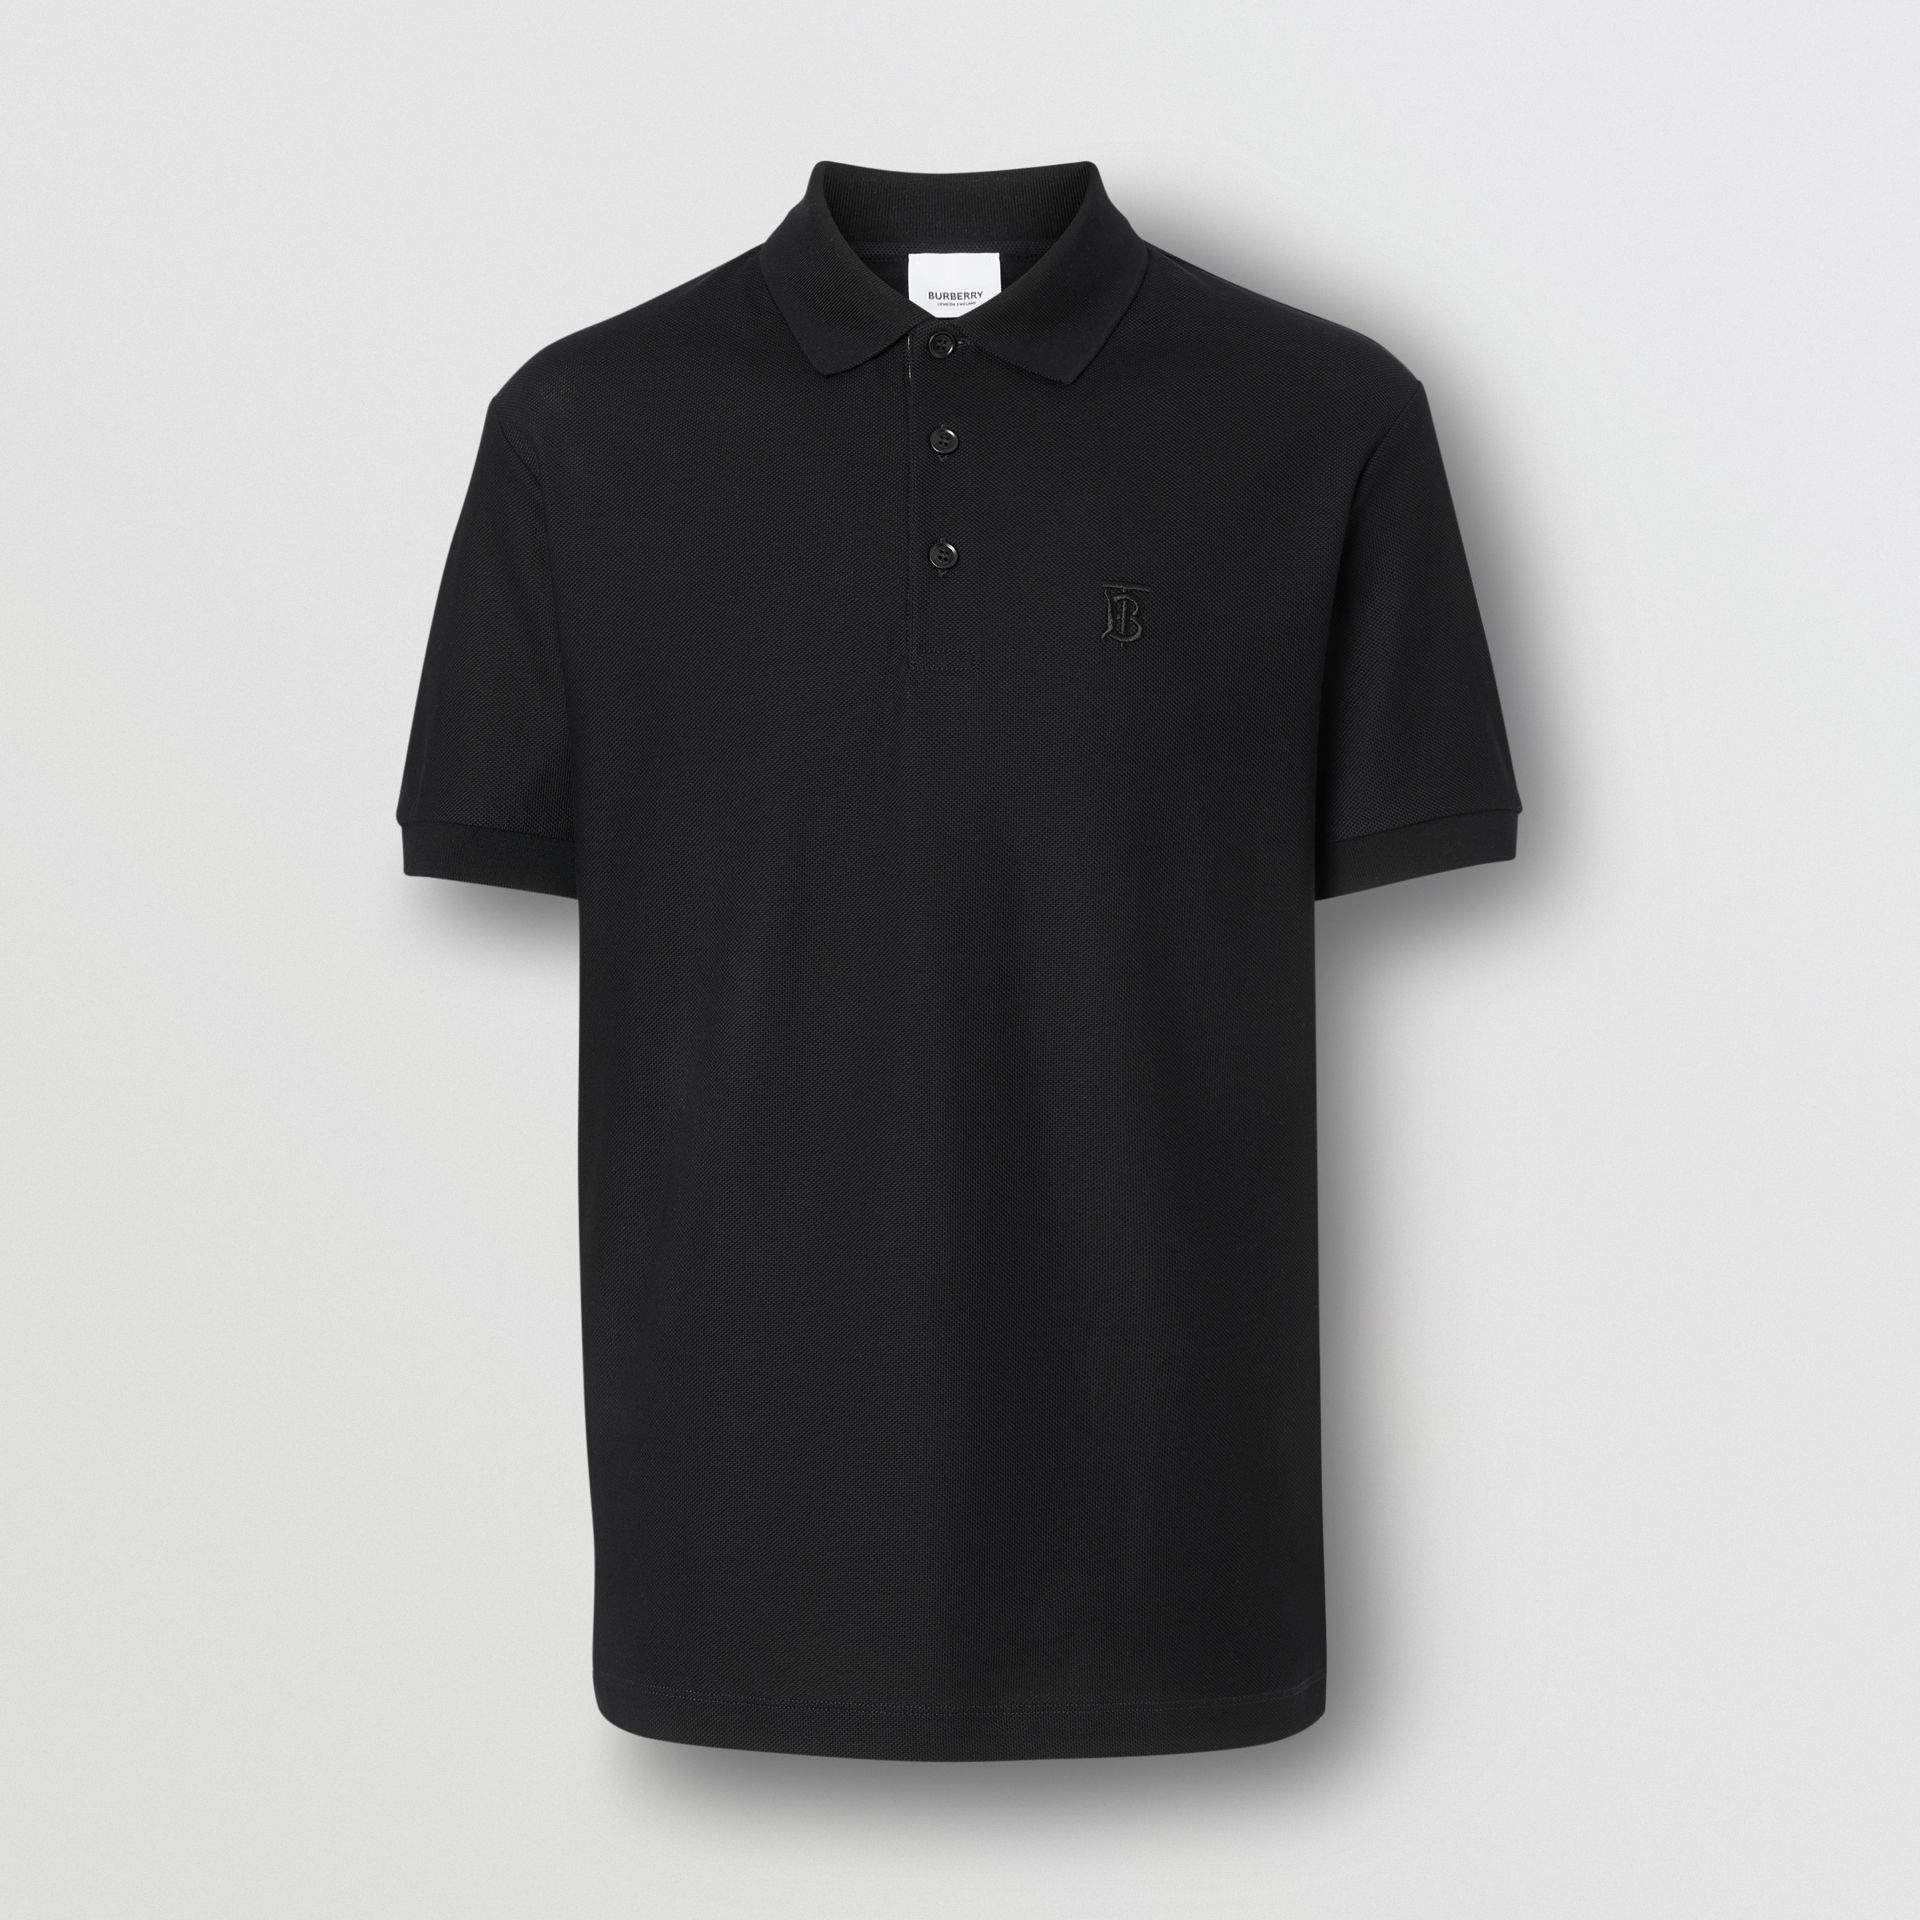 Monogram Motif Cotton Piqué Polo Shirt in Black - Men | Burberry United Kingdom - gallery image 3